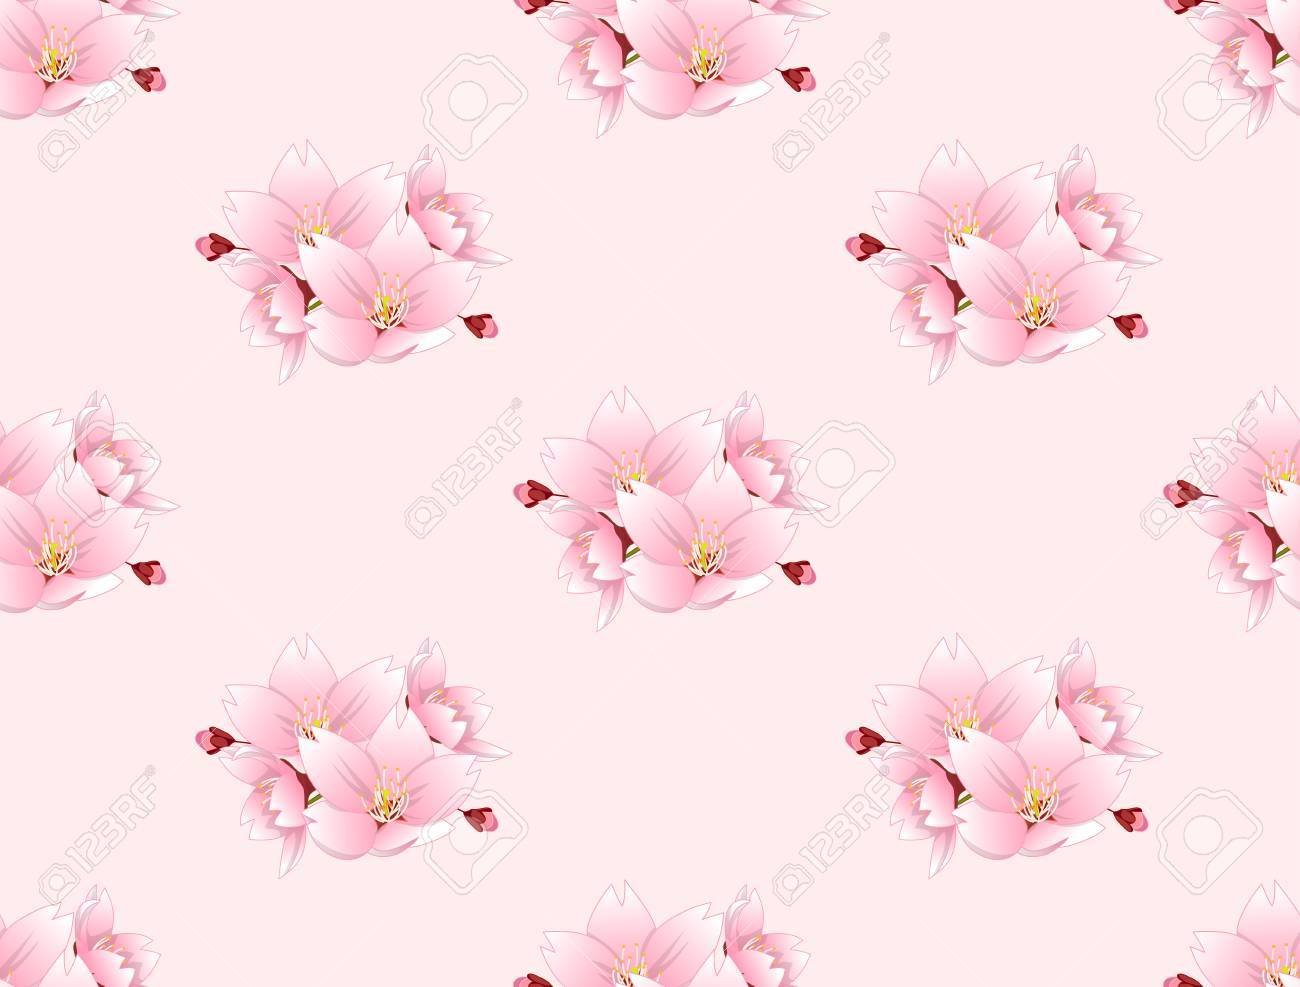 Sakura Cherry Blossom Flower Pattern Royalty Free Cliparts Vectors And Stock Illustration Image 88091659